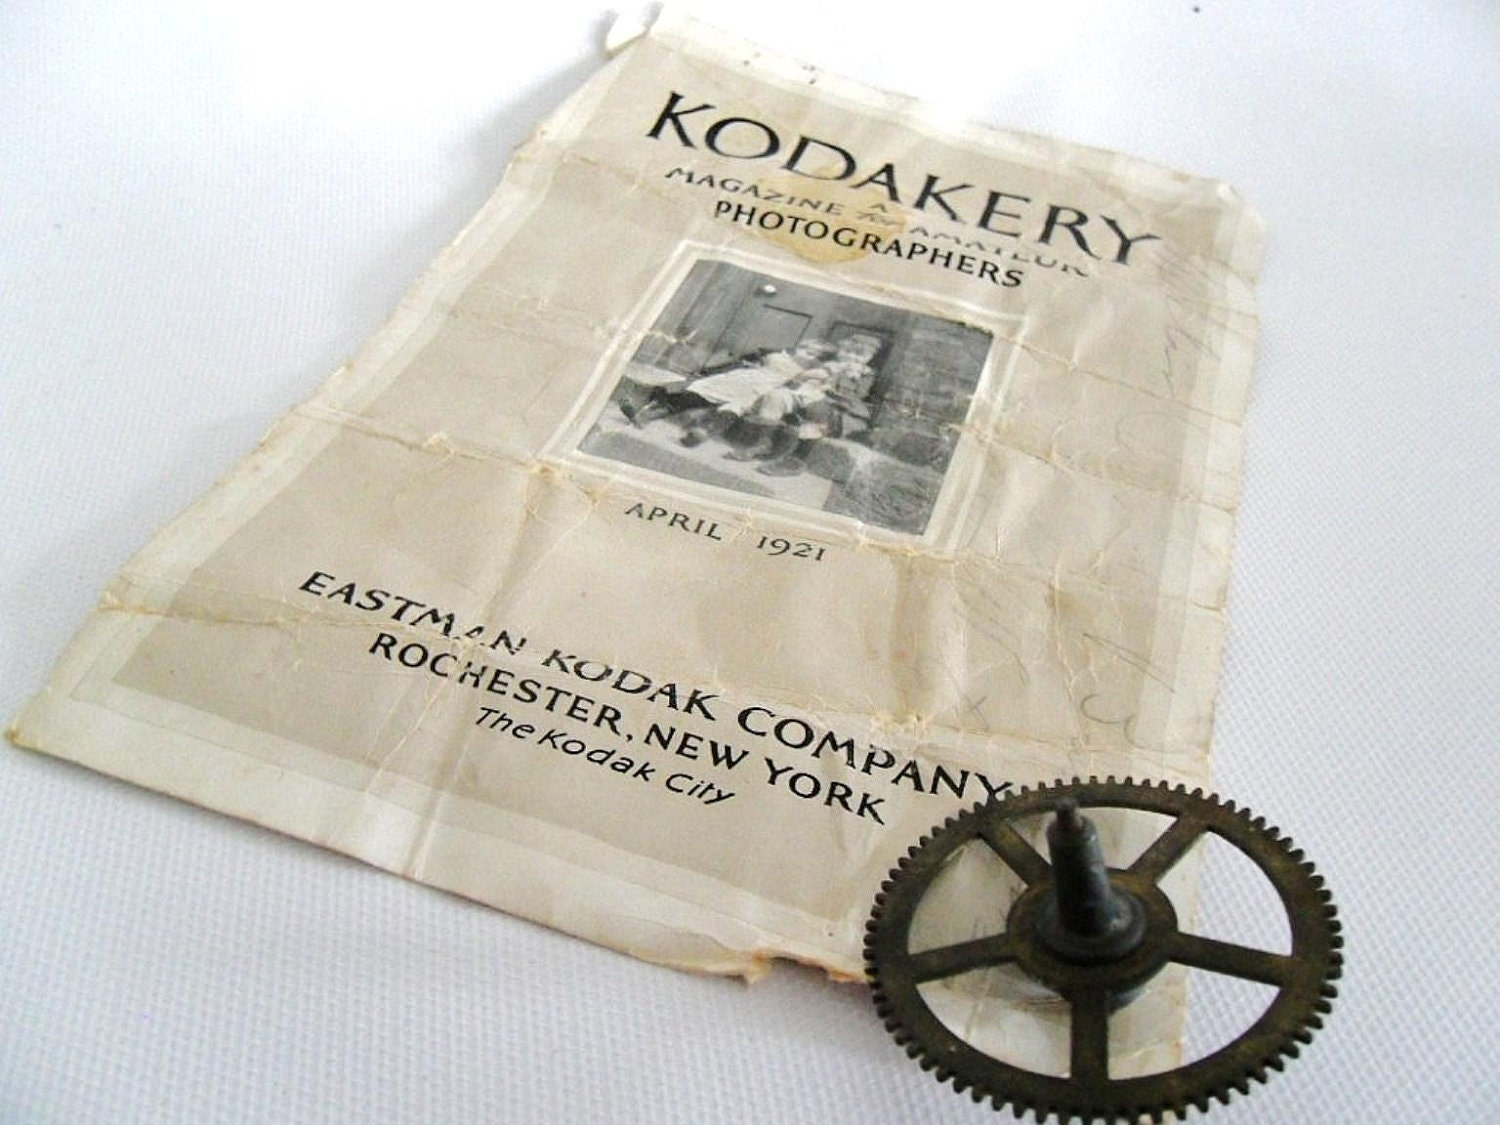 WB - 1921 Brass Photo Gear and Kodak Advertisement - owlsongvintage